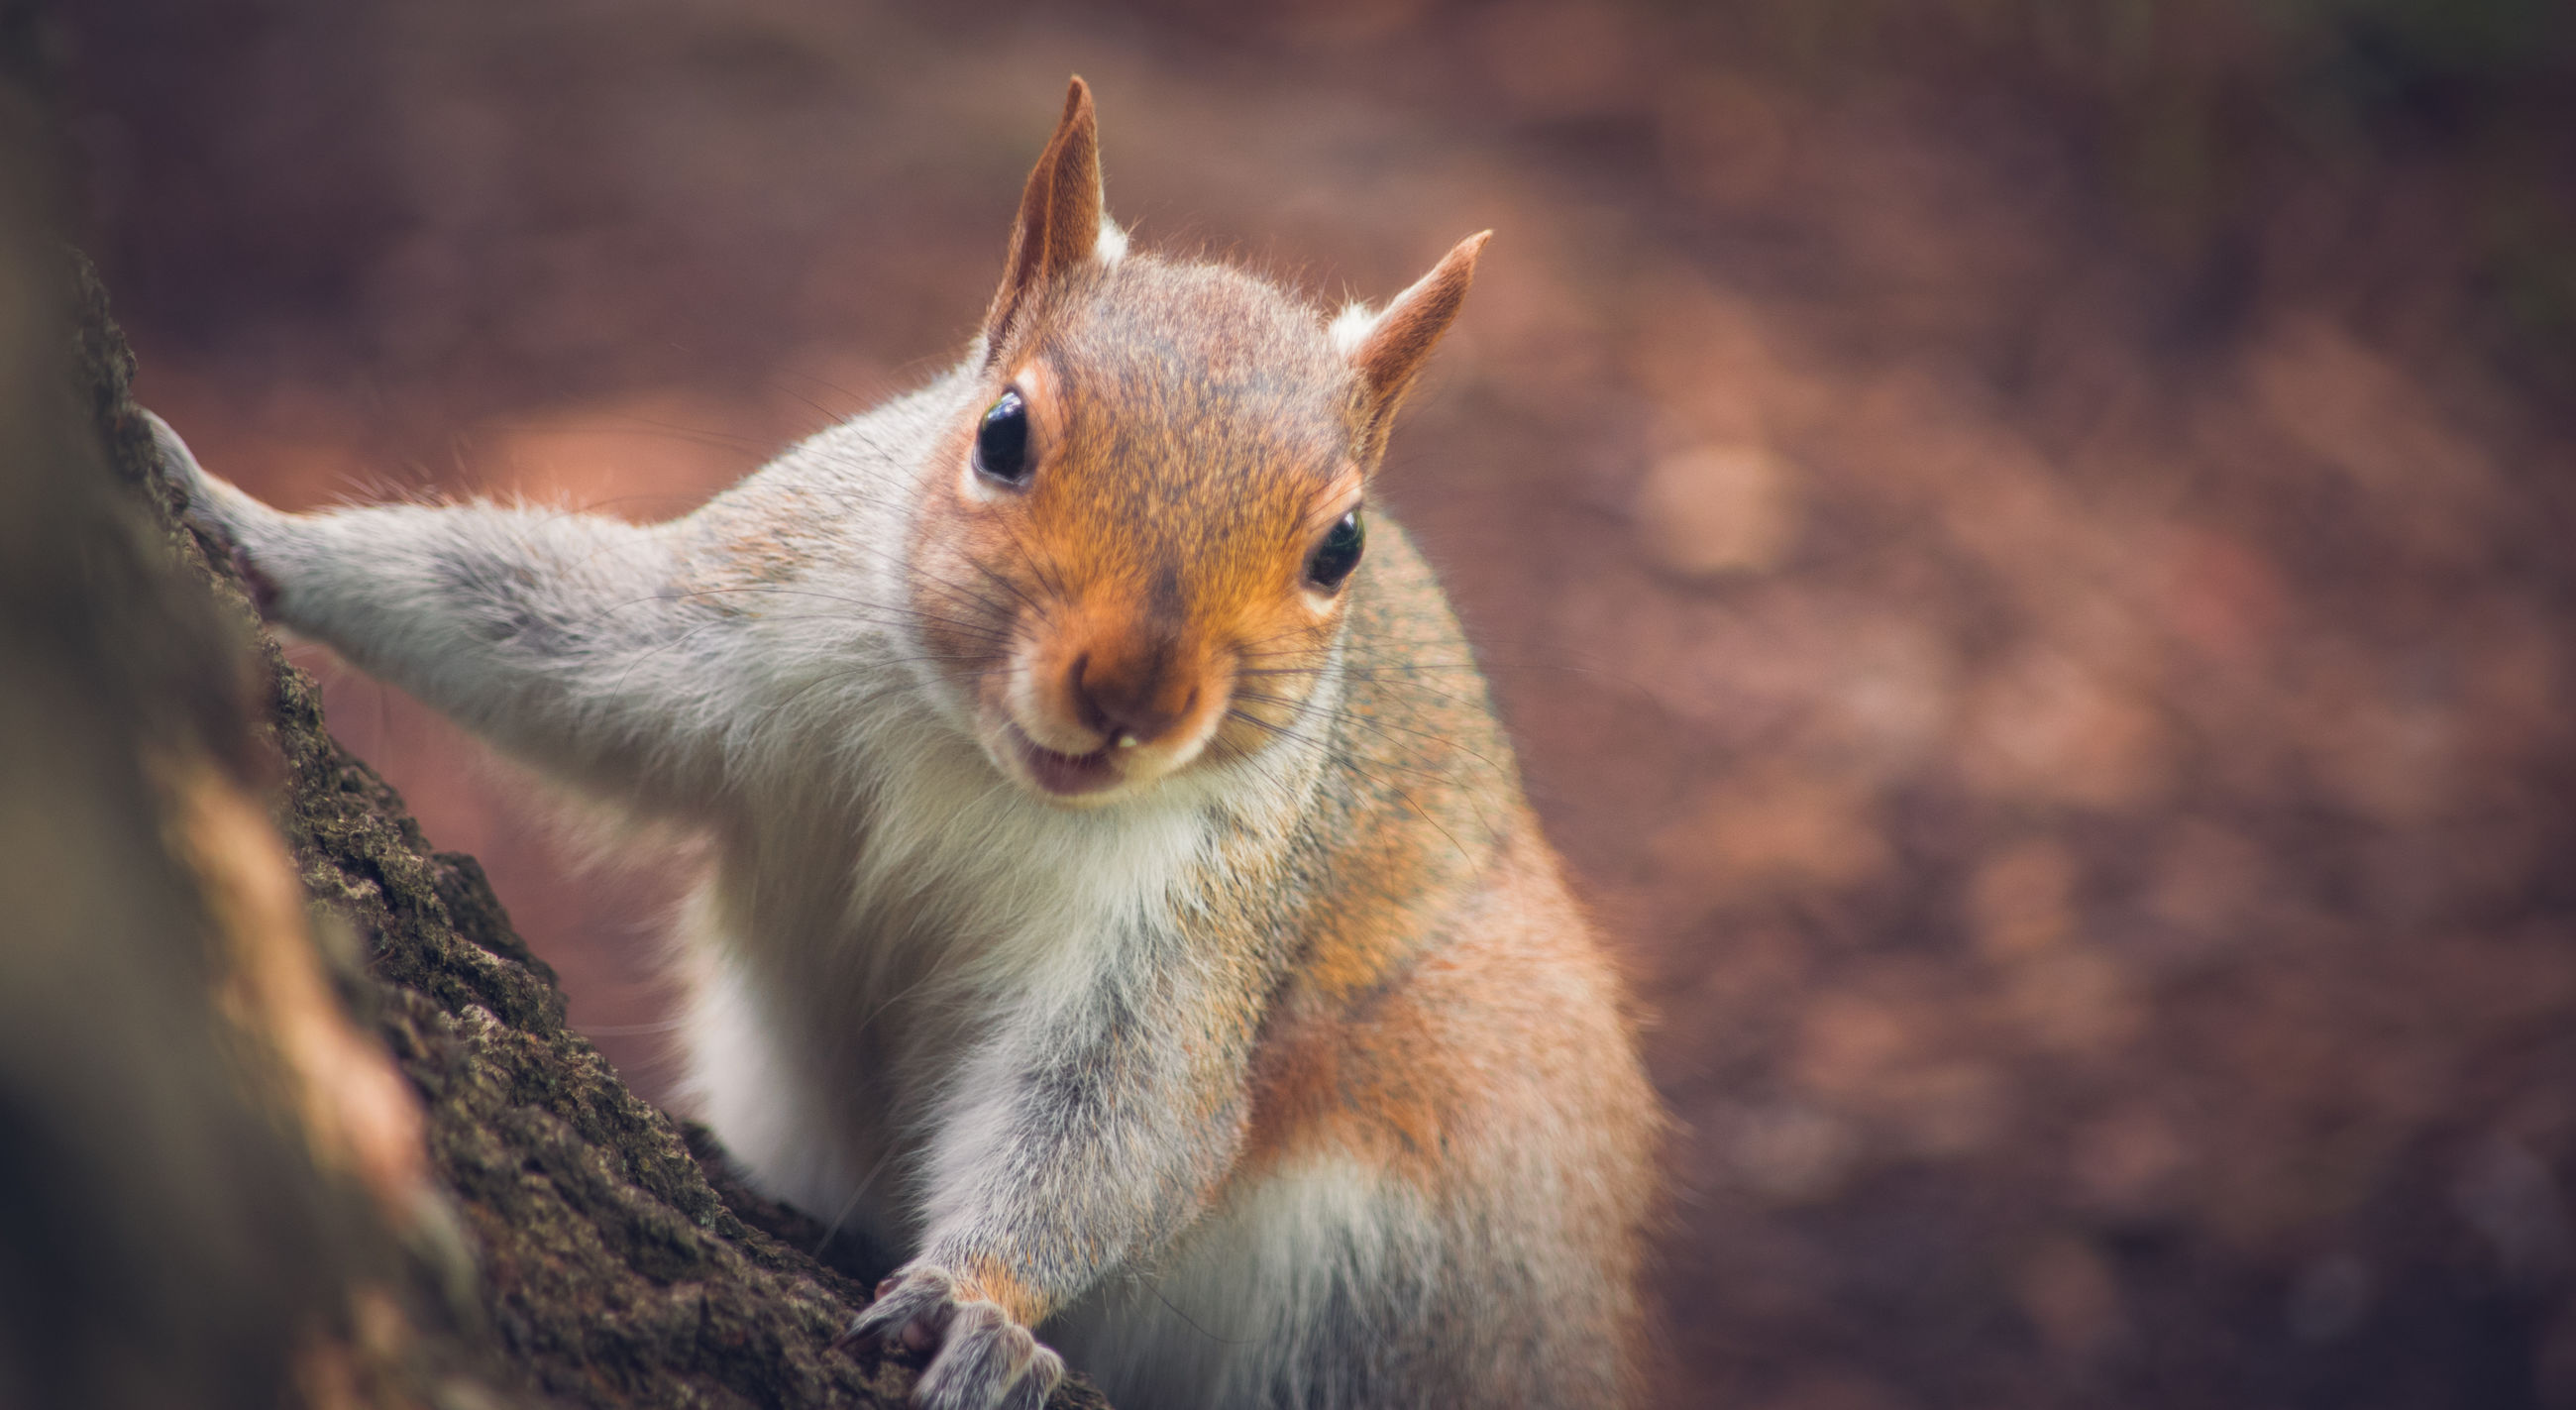 one animal, animal themes, mammal, squirrel, no people, animals in the wild, animal wildlife, domestic animals, nature, pets, day, outdoors, close-up, portrait